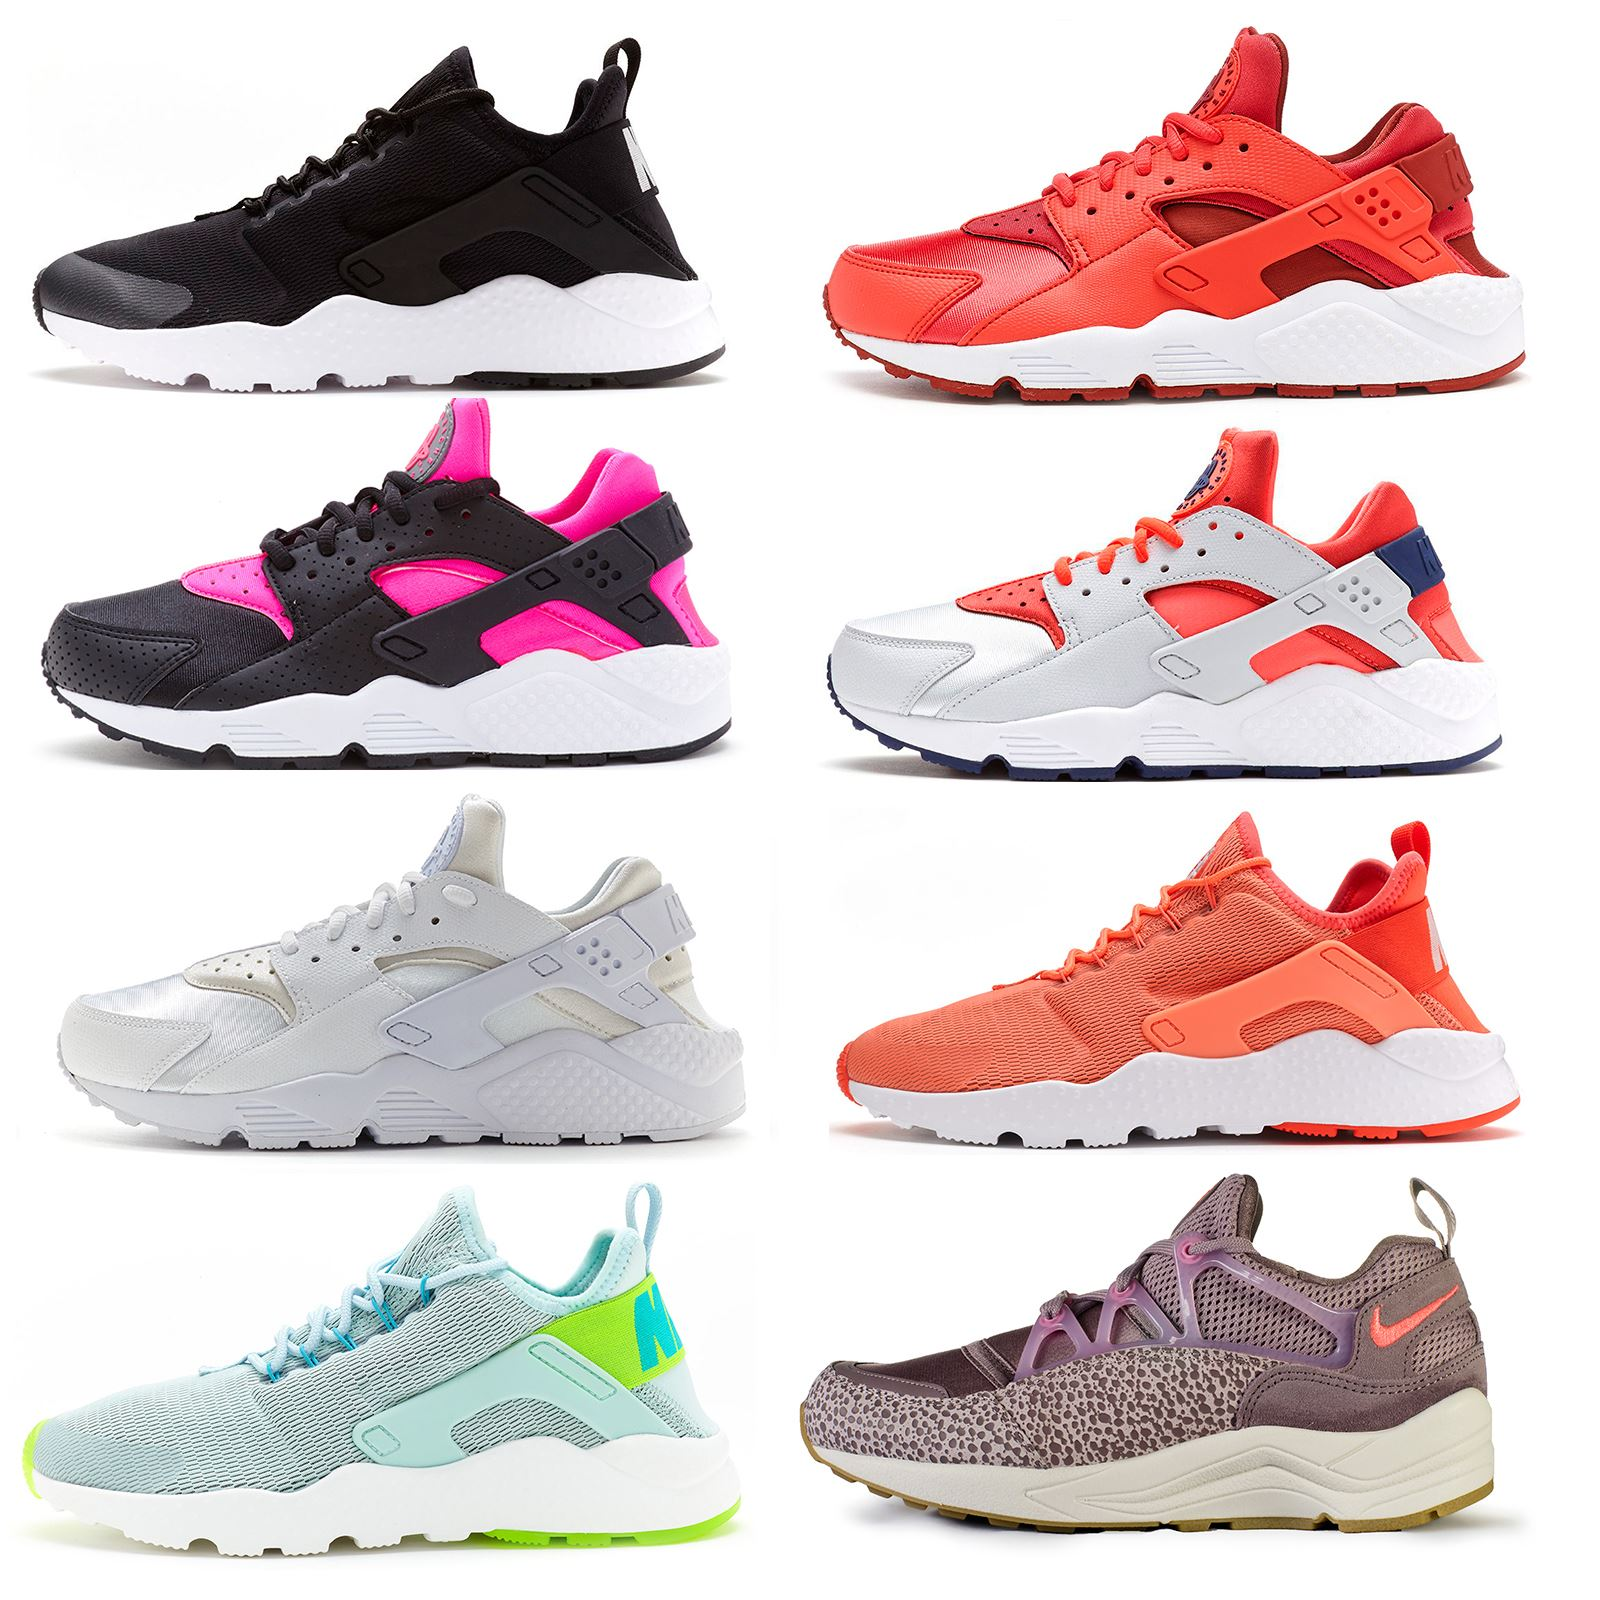 timeless design f56ba f7e13 Details about Nike Air Huarache Women Running Trainers in All Sizes